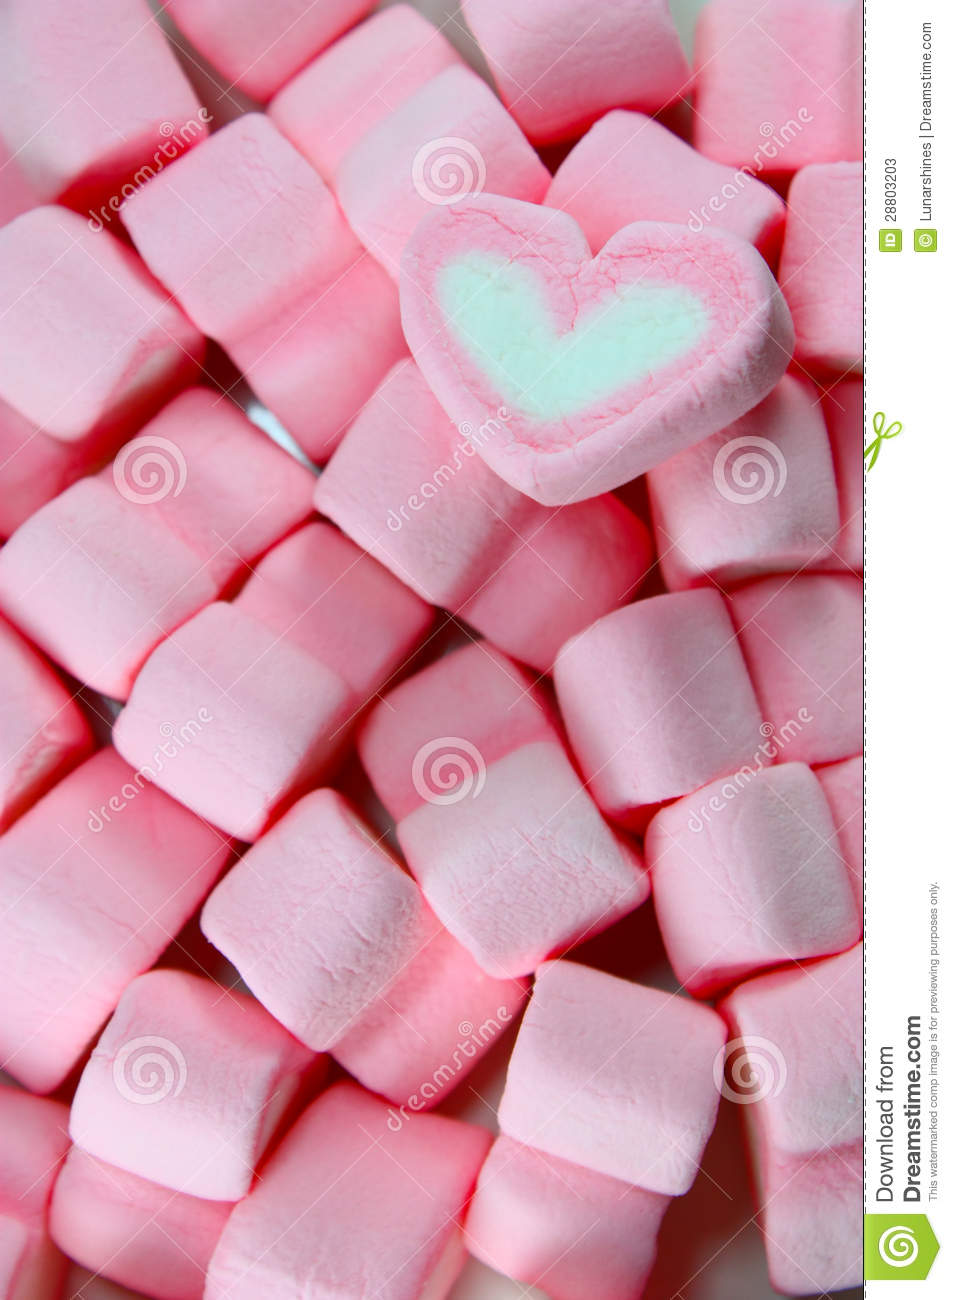 Marshmallow Hearts Stock Photos - Image: 28803203